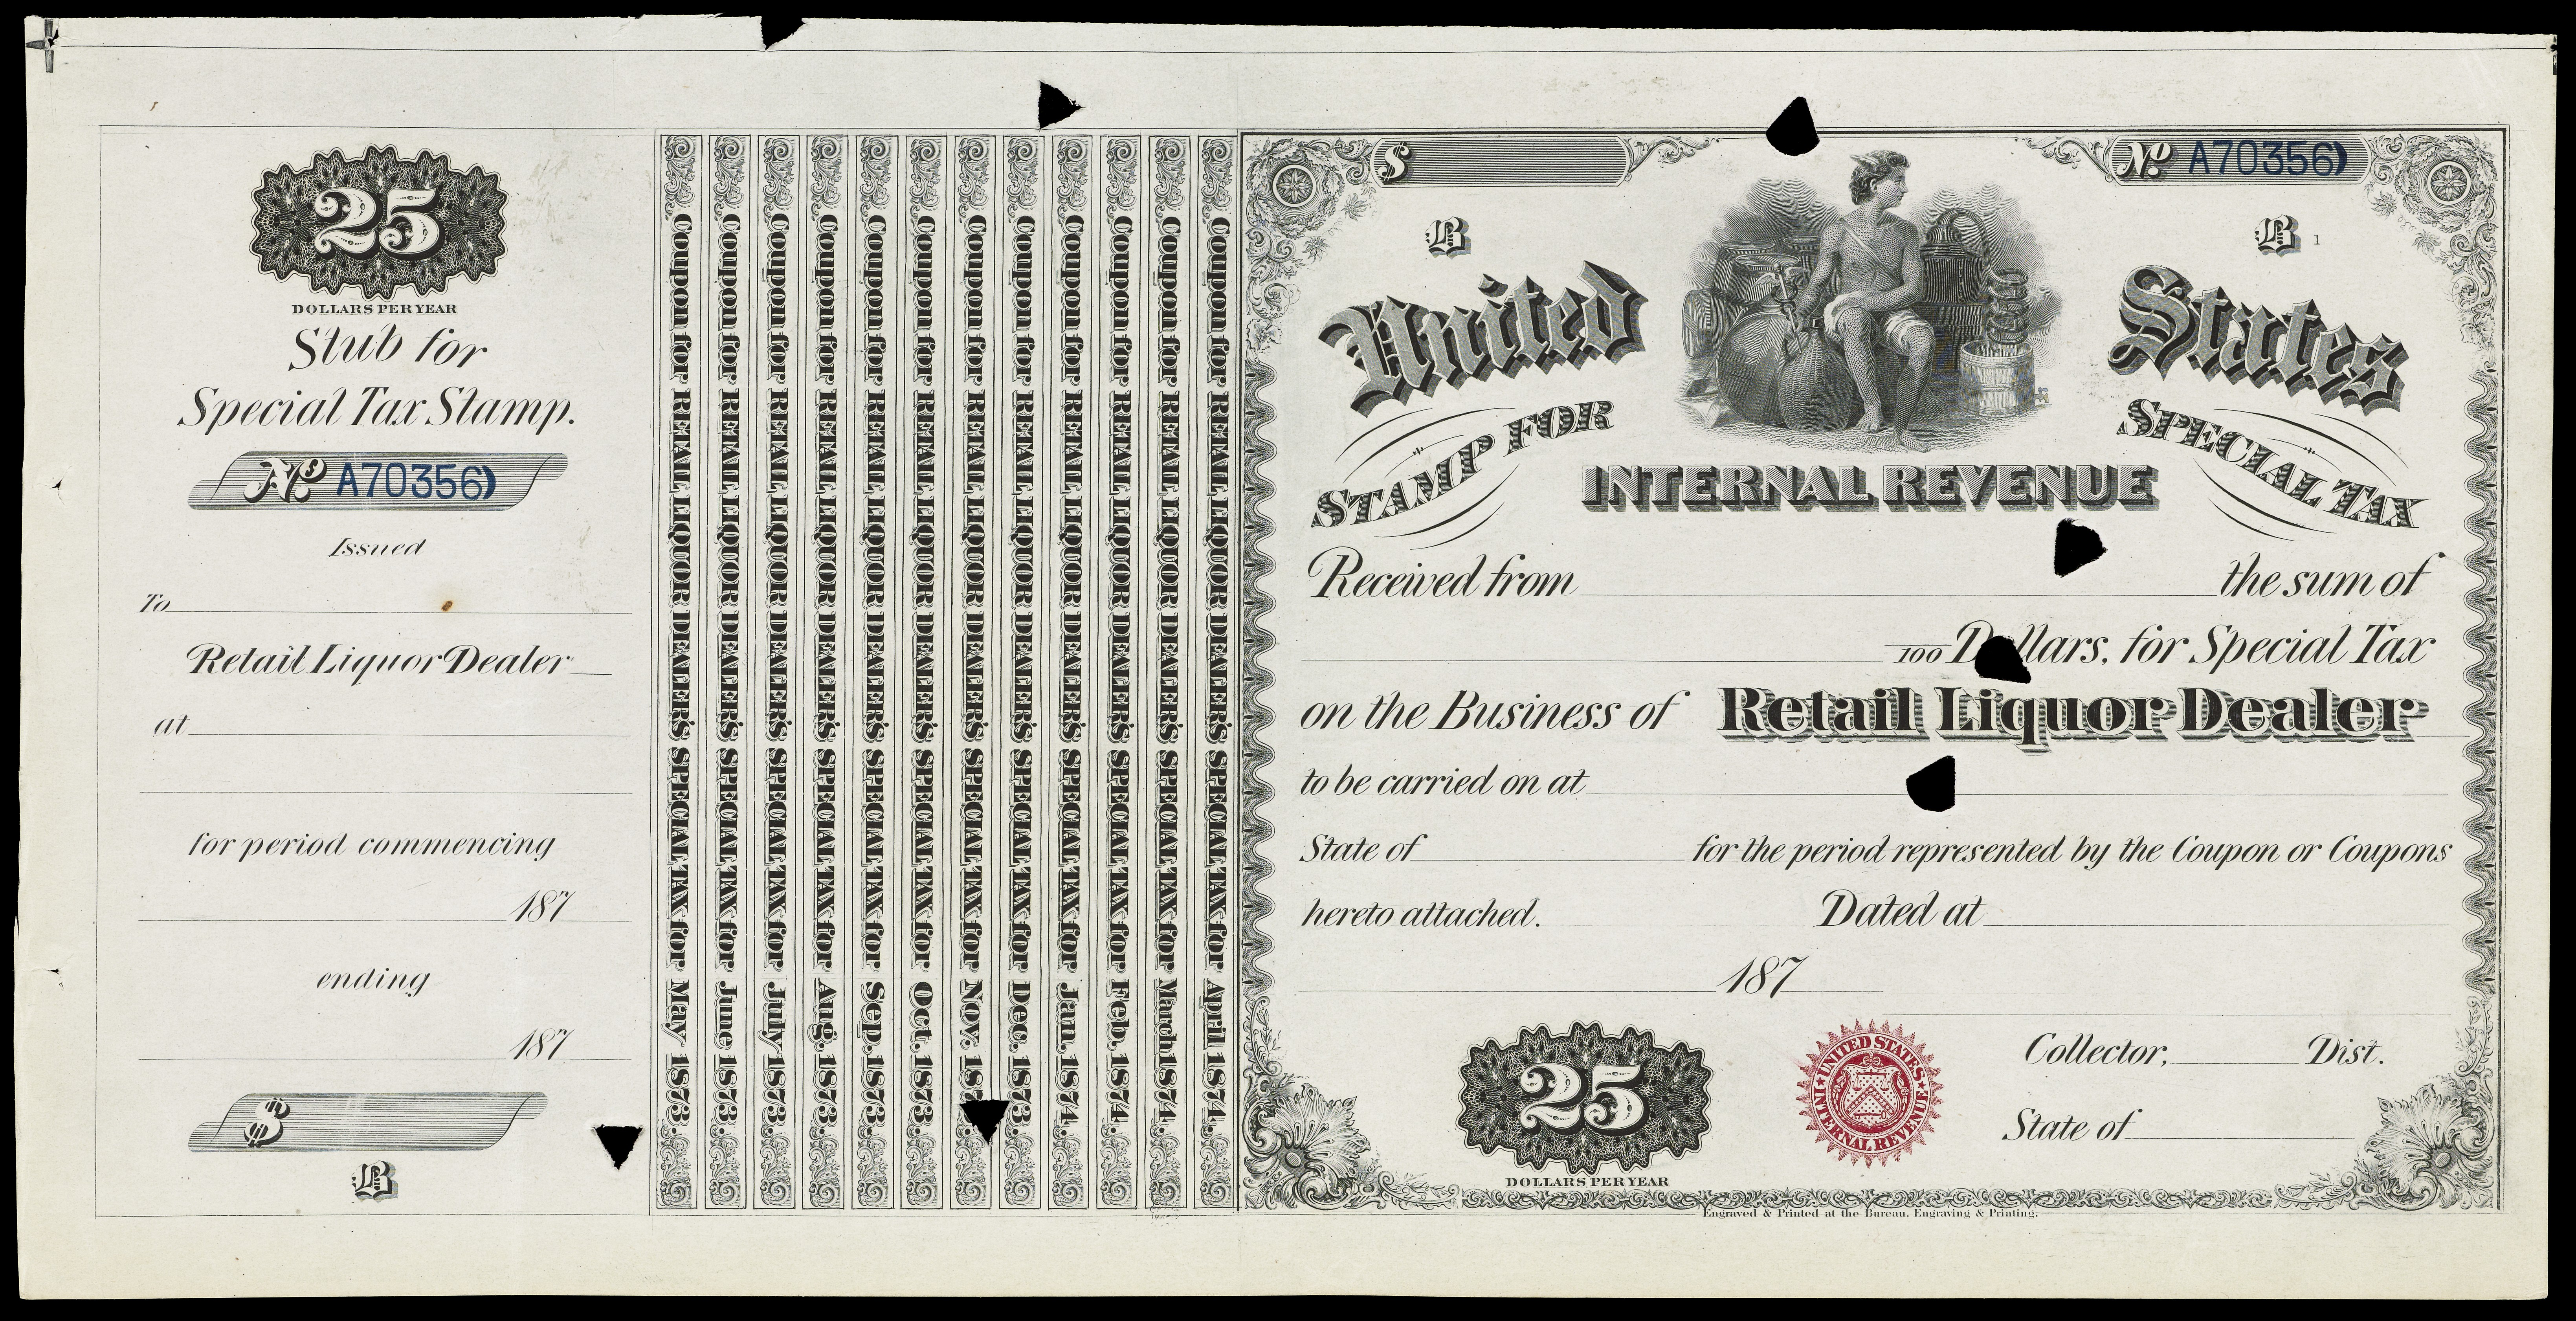 FileUnited States Internal Revenue Stamp For Special Tax Wellcome L0064704